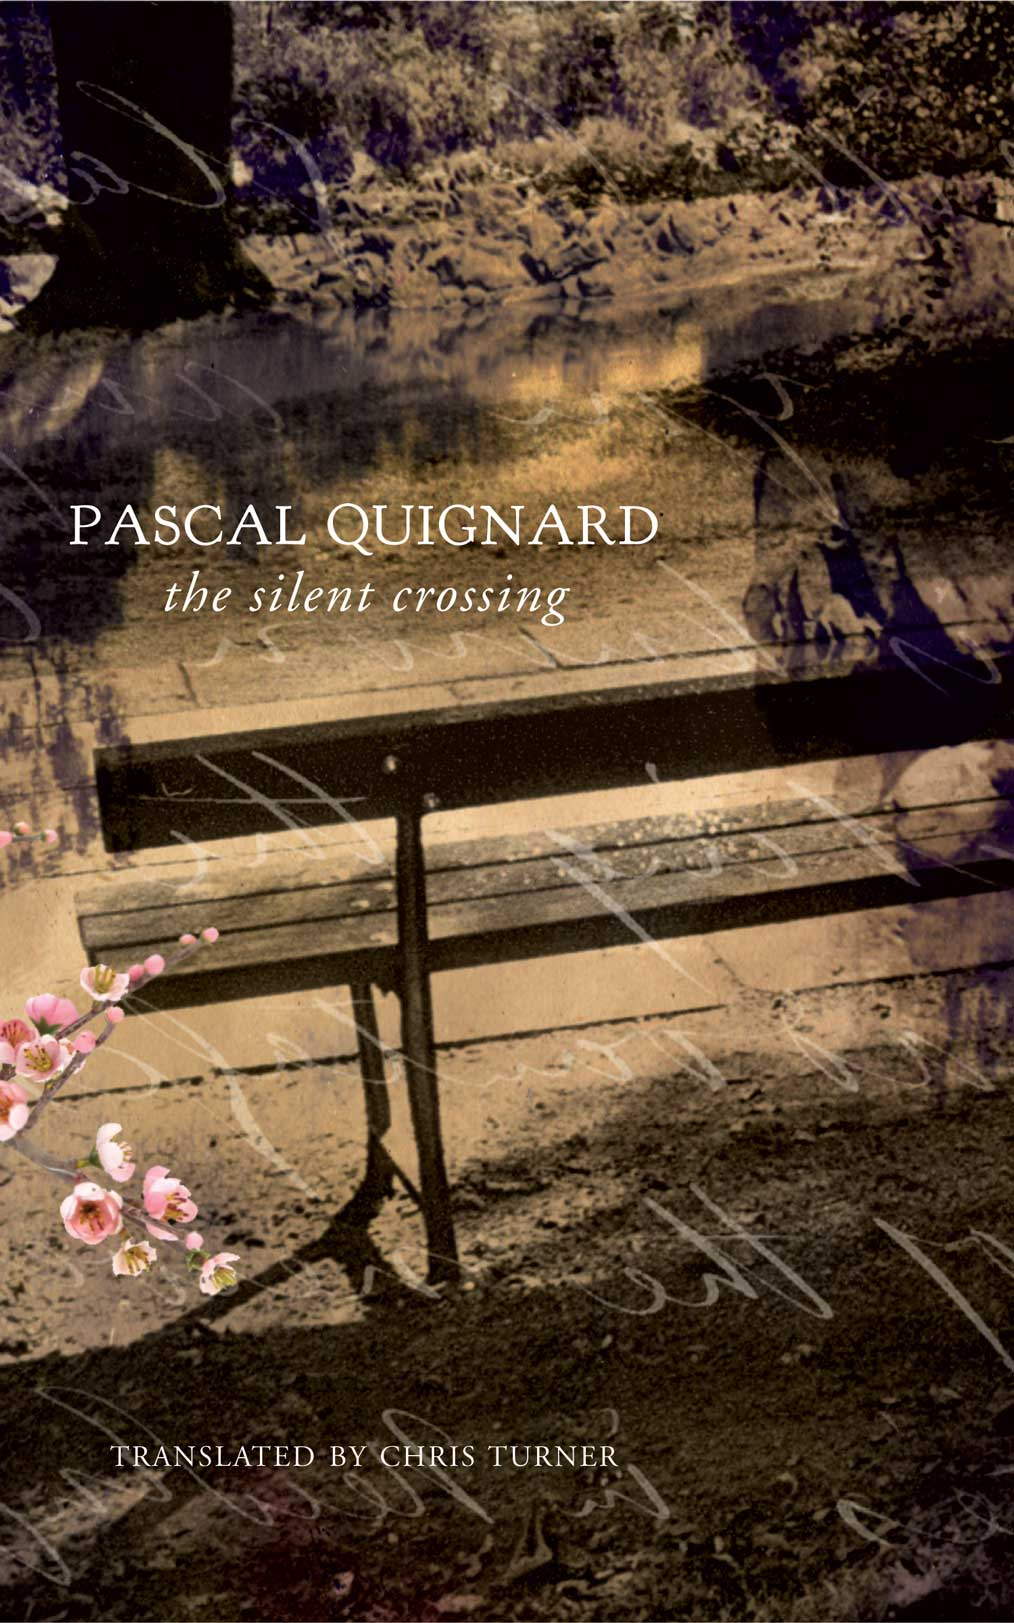 The Silent Crossing by Pascal Quignard | Seagull Books